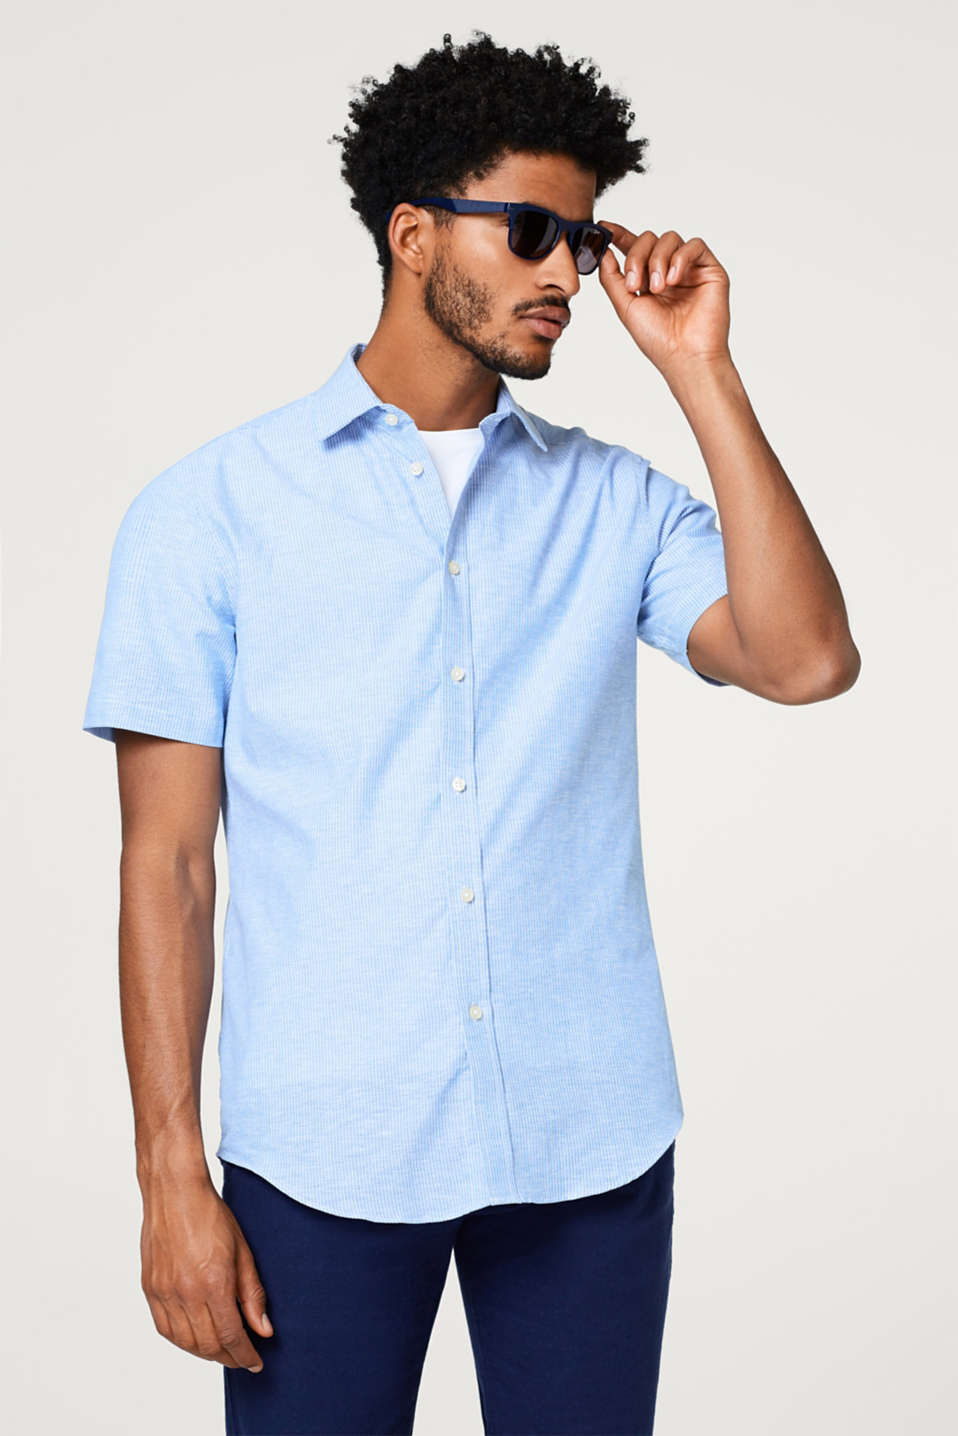 Esprit - Striped, short sleeve shirt made of blended linen